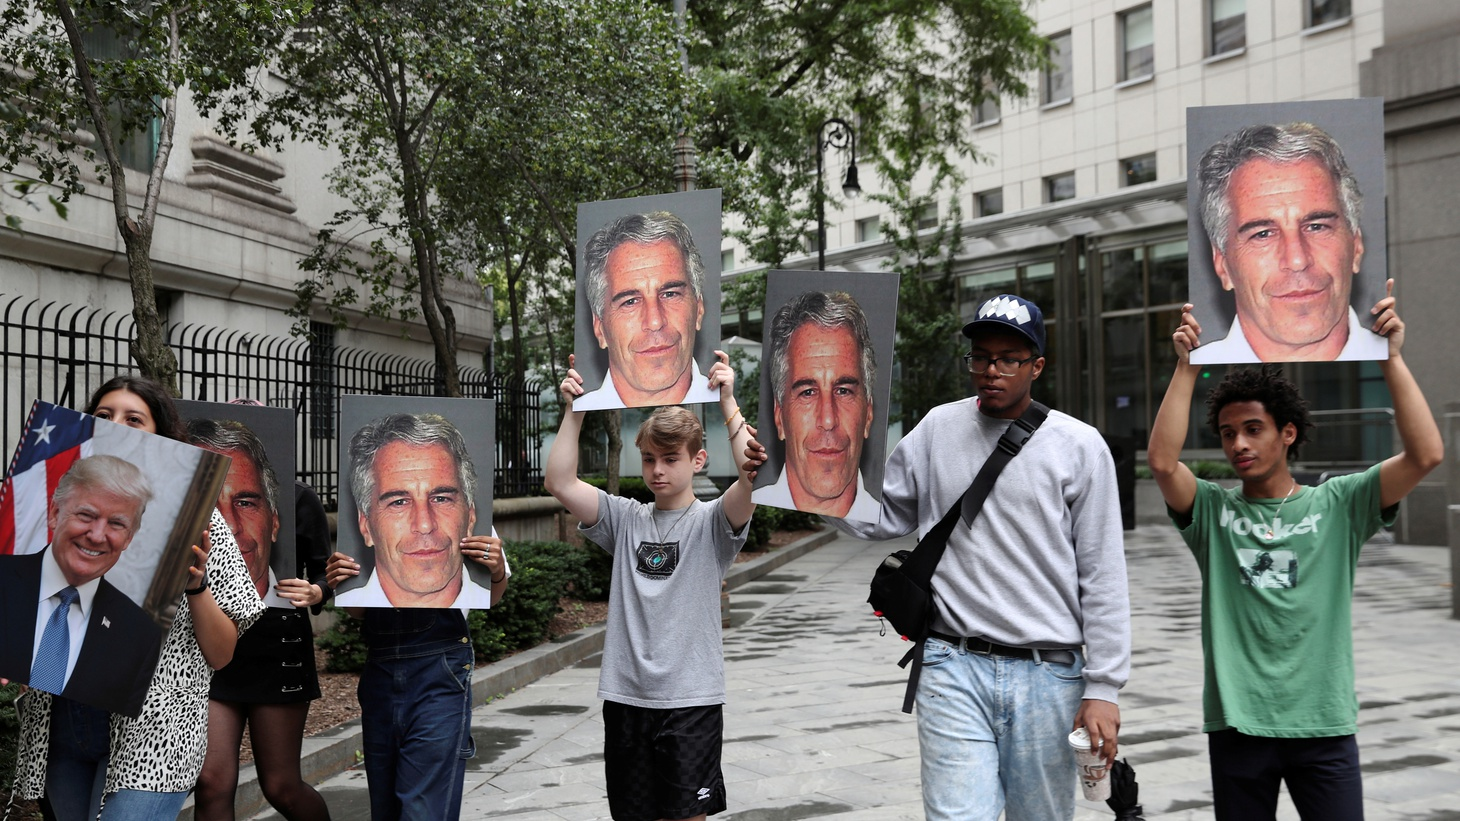 Demonstrators hold signs aloft protesting Jeffrey Epstein, as he awaits arraignment in the Southern District of New York on charges of sex trafficking of minors and conspiracy to commit sex trafficking of minors, in New York, U.S., July 8, 2019.